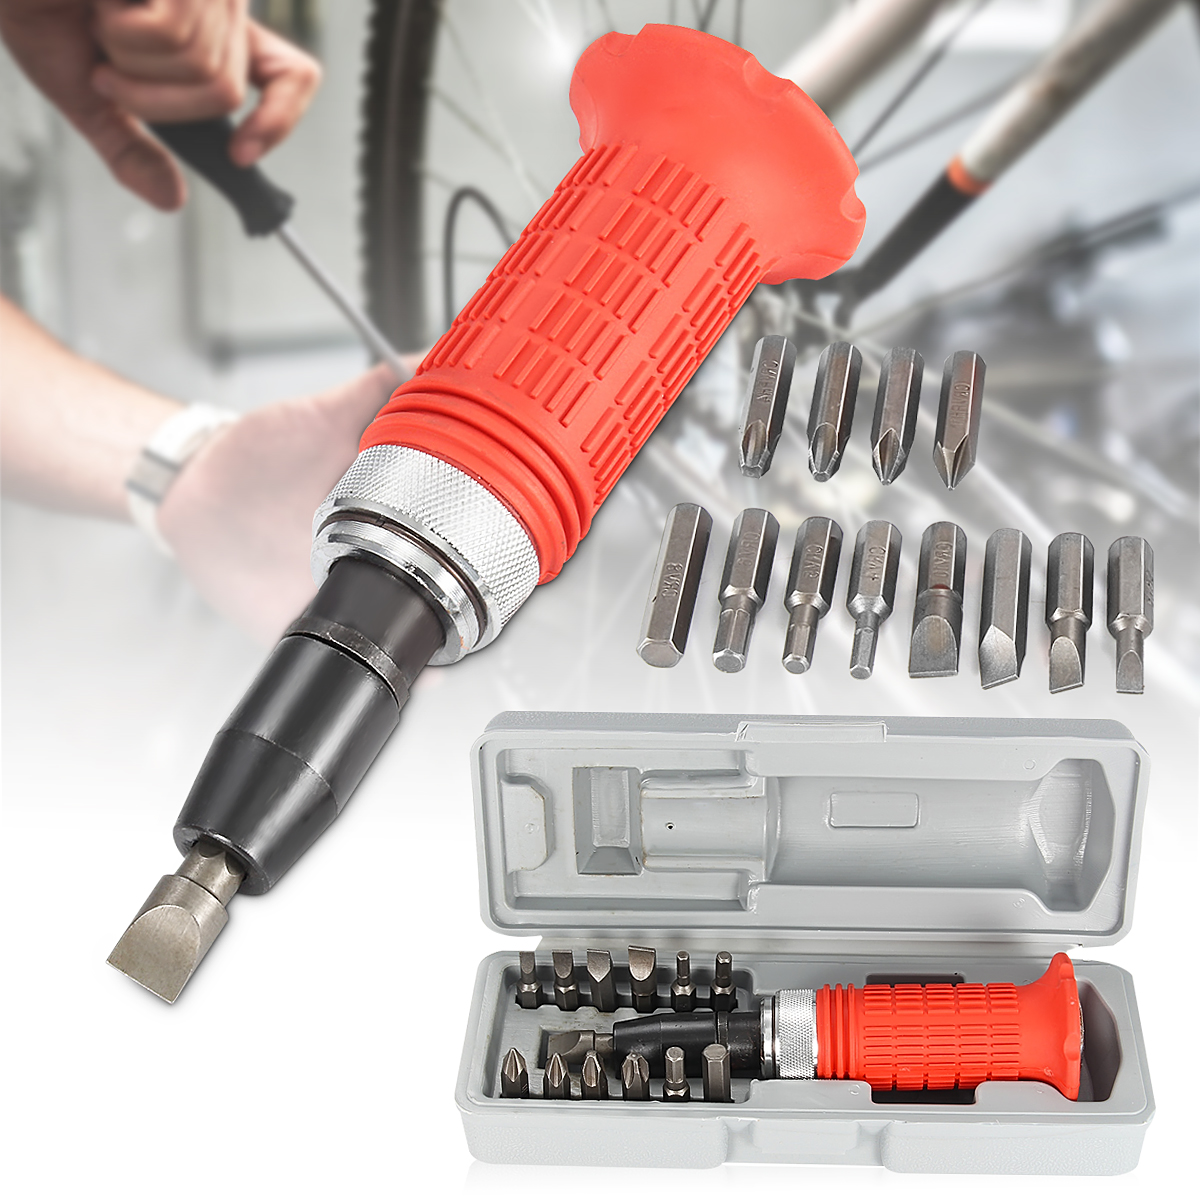 Impact Screwdriver Set Driver Carbon Steel Multi Bits Hammer Socket Repair Kit Storage Box Screwdriver Head Set Multi-purpose